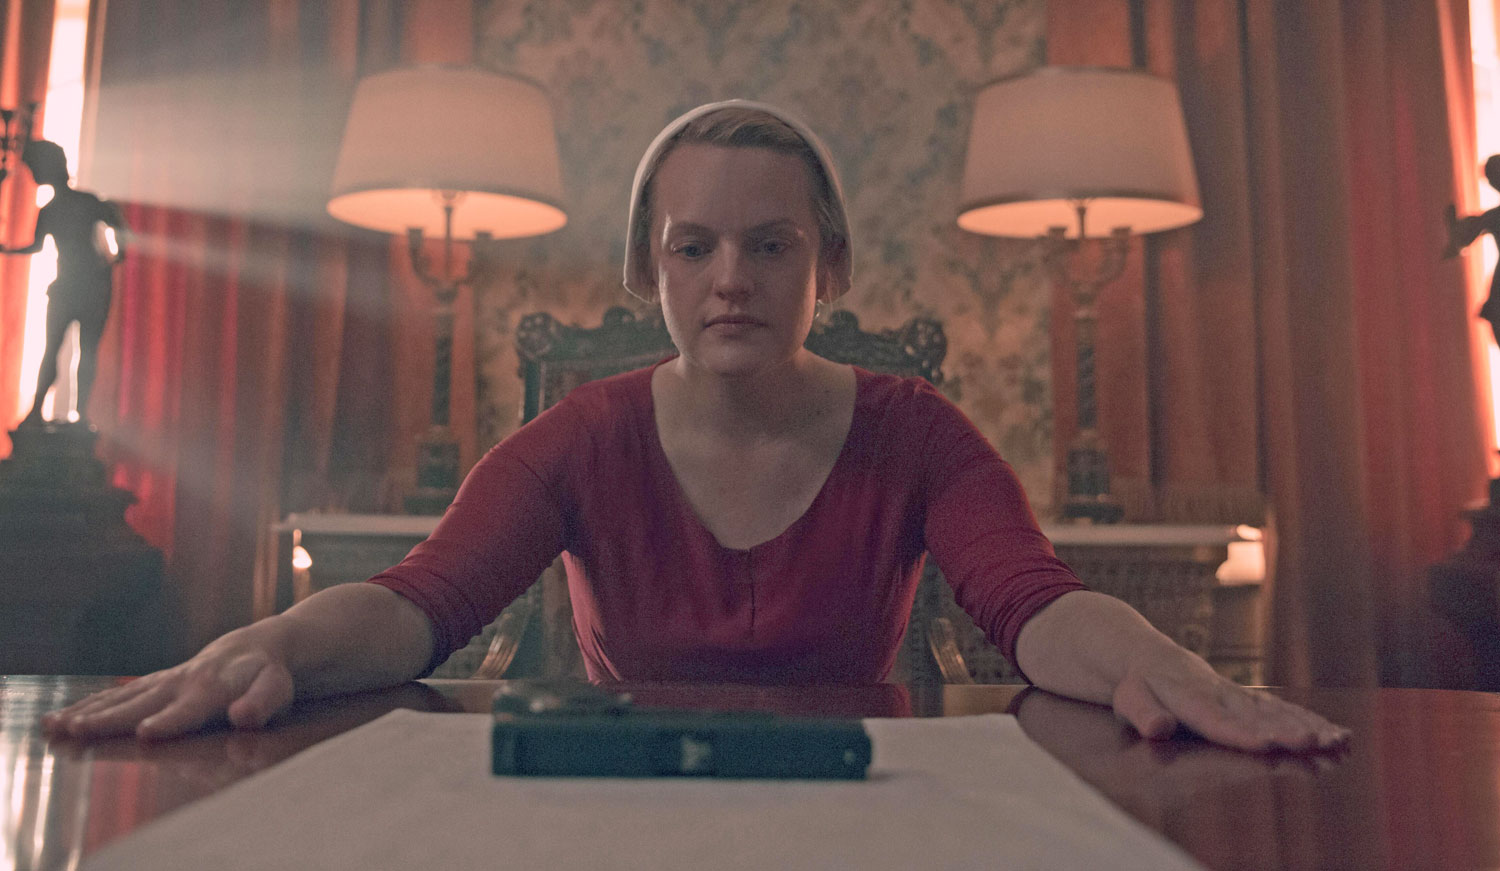 'The Handmaid's Tale' Emmy submissions: 35 entries include Elisabeth Moss, Yvonne Strahovski and 15 other actors